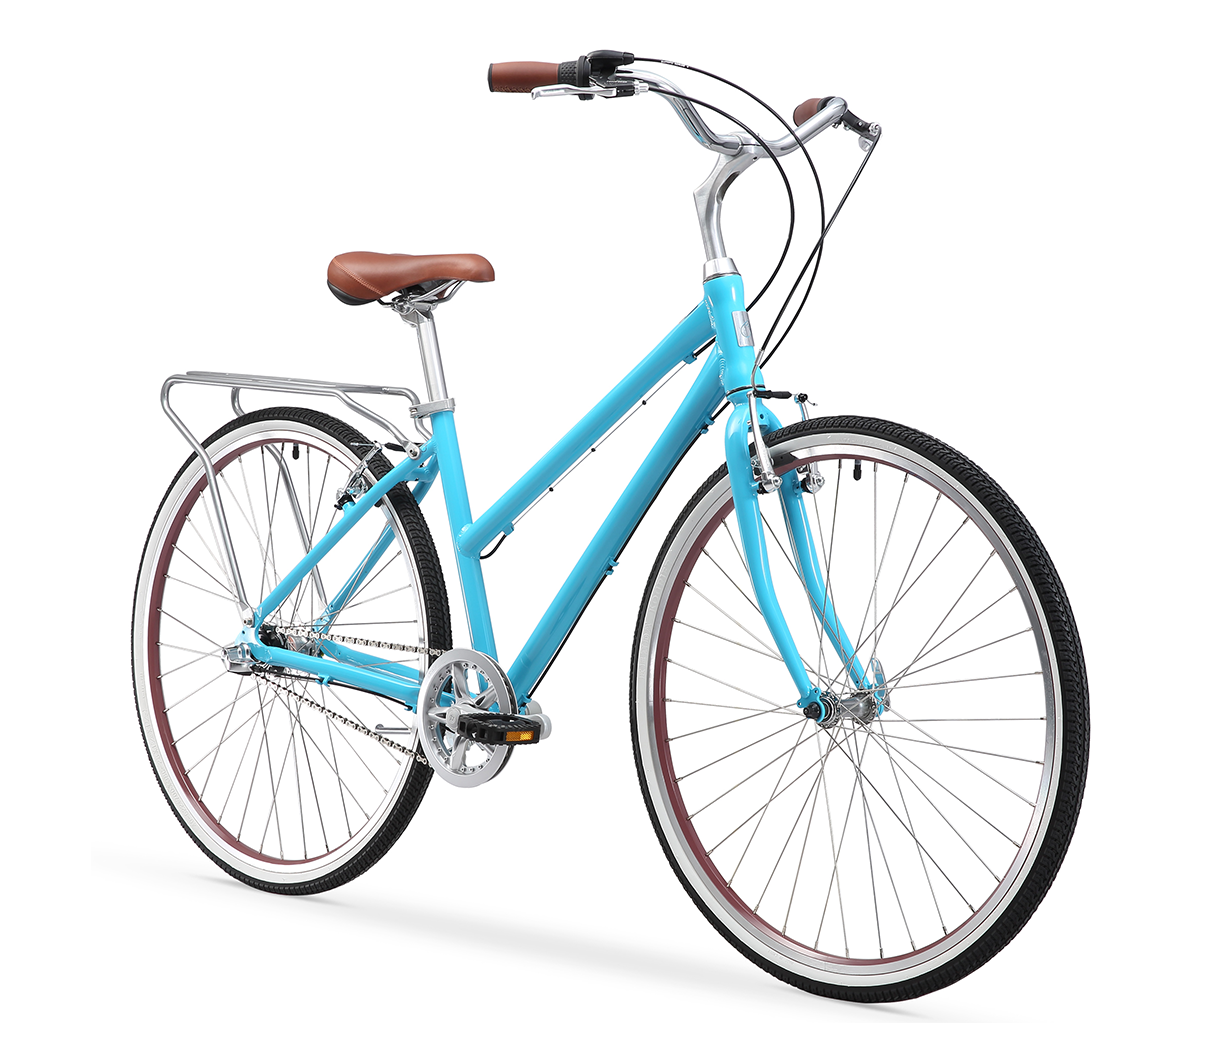 sixthreezero Explore Your Range Women's 3 Speed Commuter Hybrid Bike